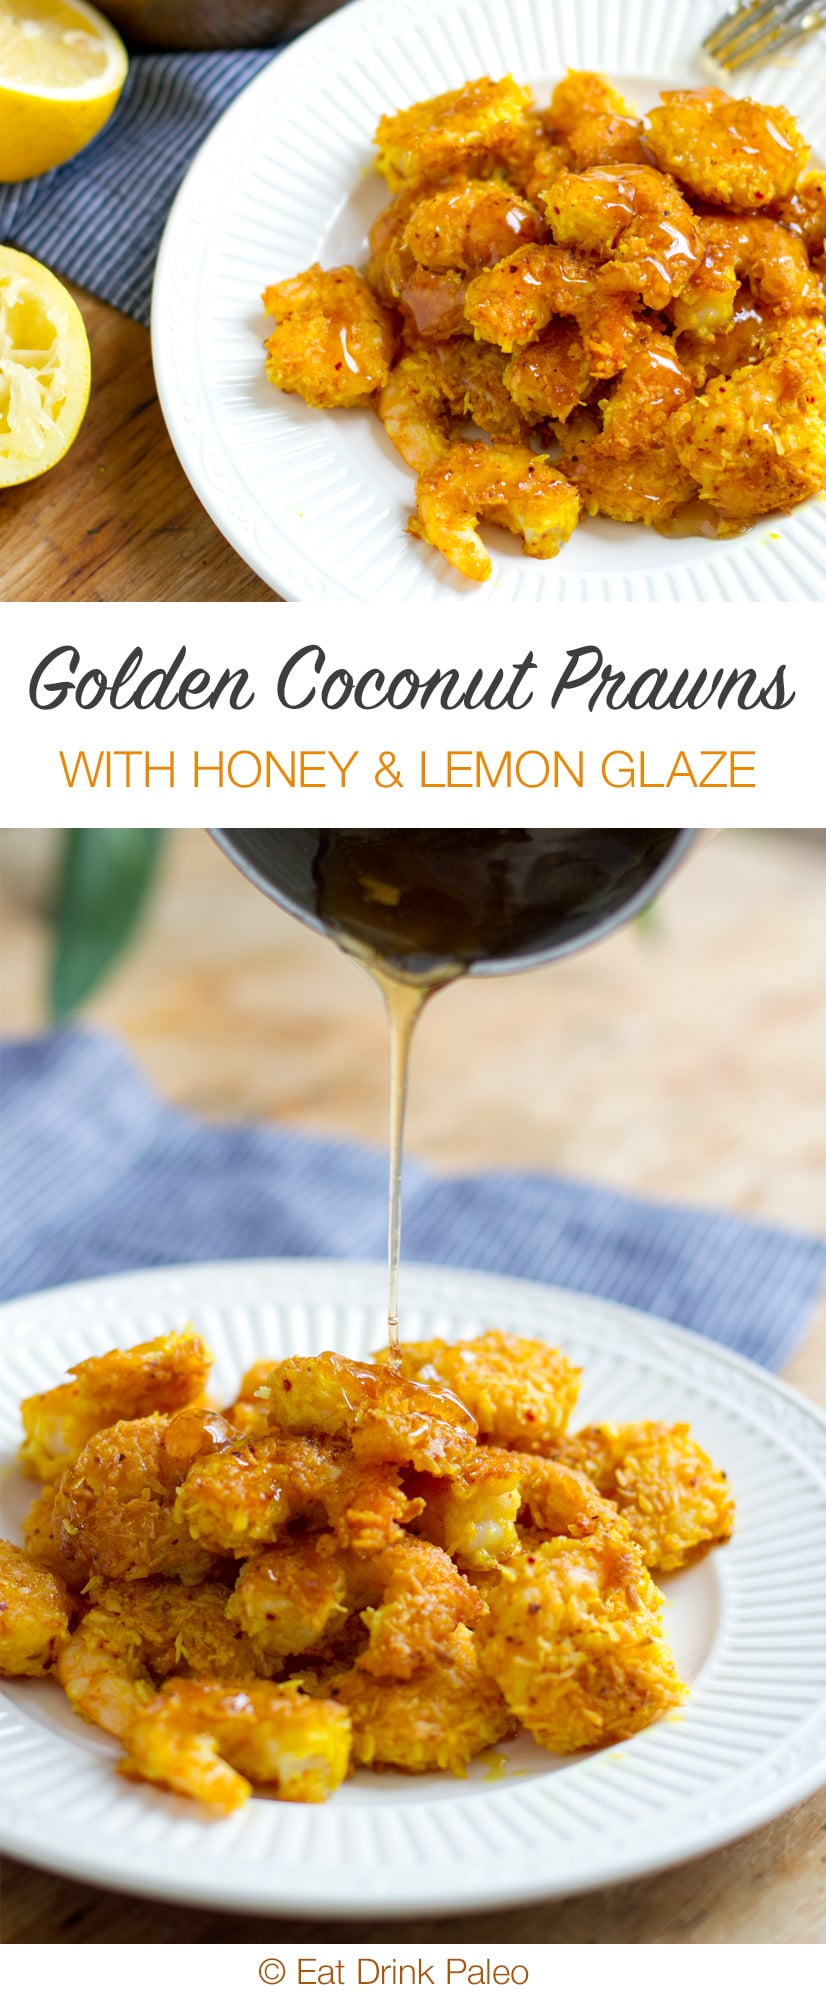 Golden Coconut Shrimp with Honey Lemon Glaze - fantastic paleo friendly recipes using juicy prawns